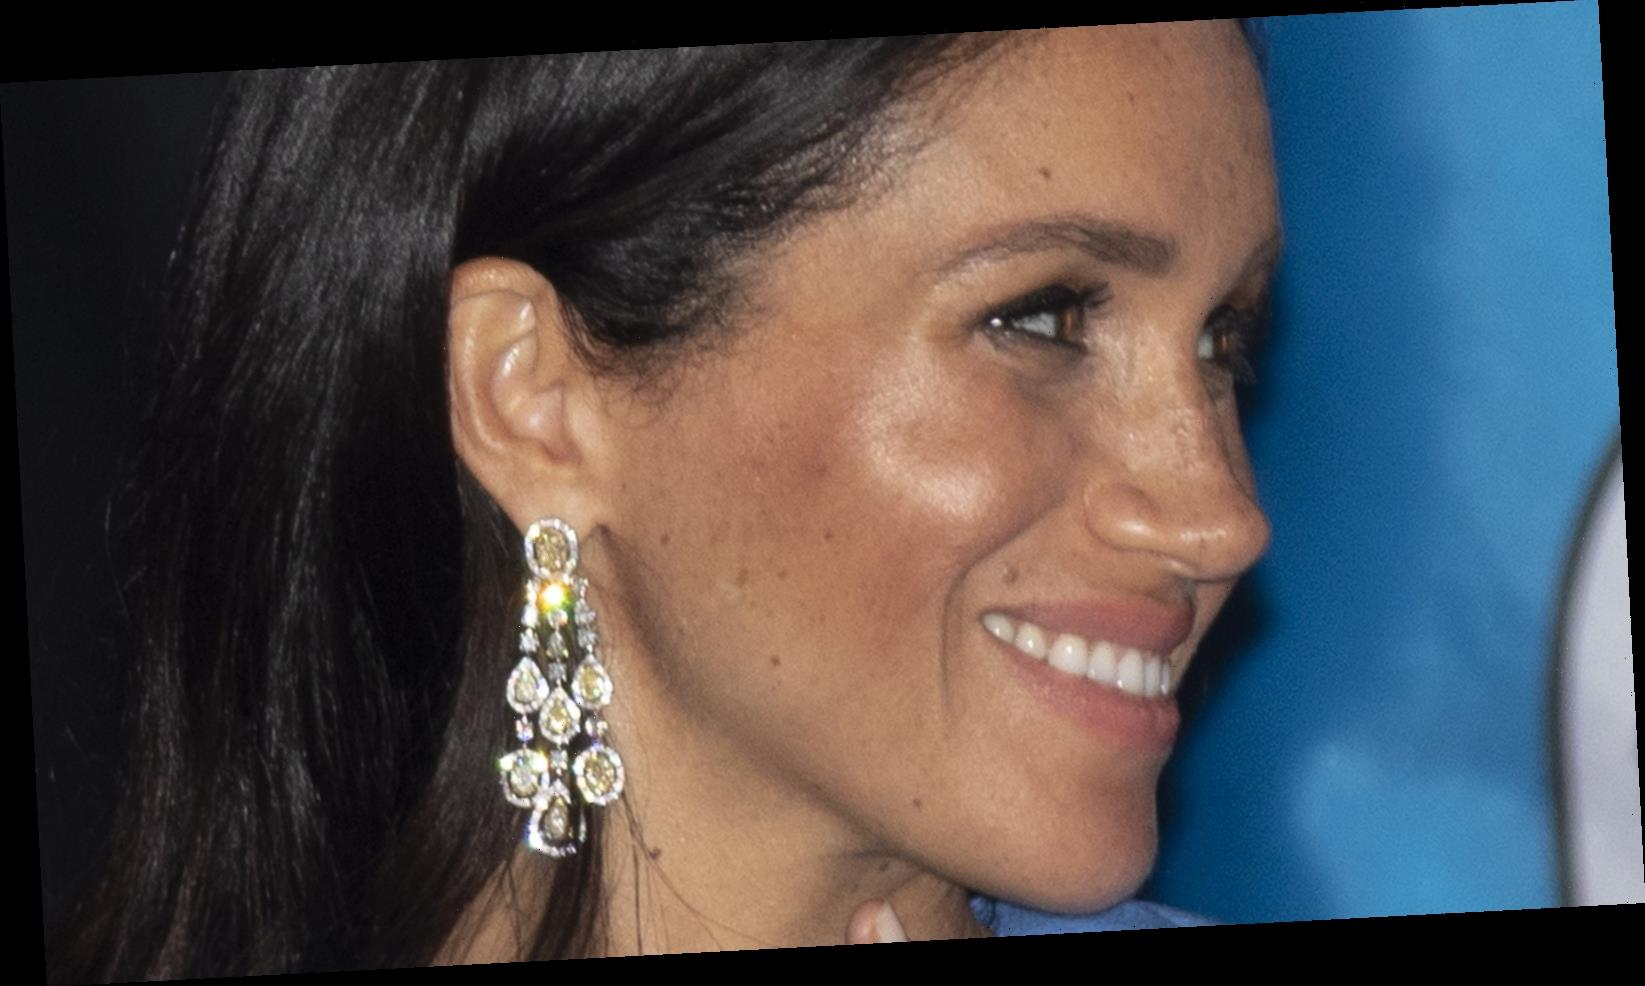 Meghan Markle May Have Been Warned Not To Wear These Earrings. Here's Why